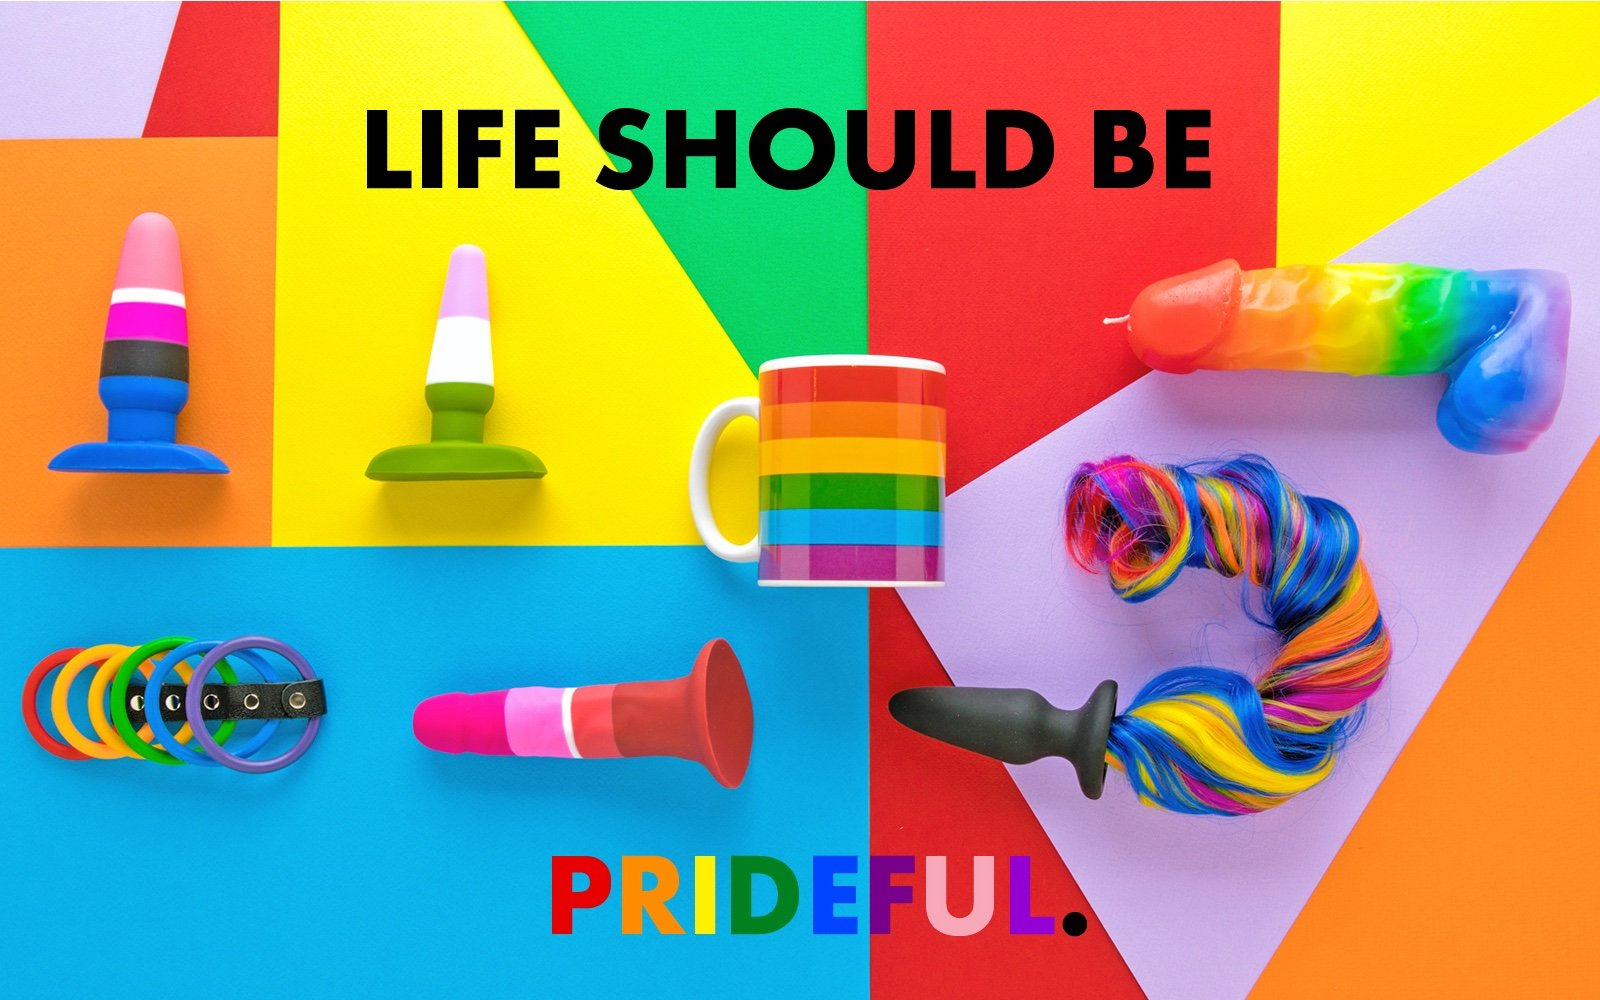 Life Should Be Prideful - Discover PRIDE products - Rolik®